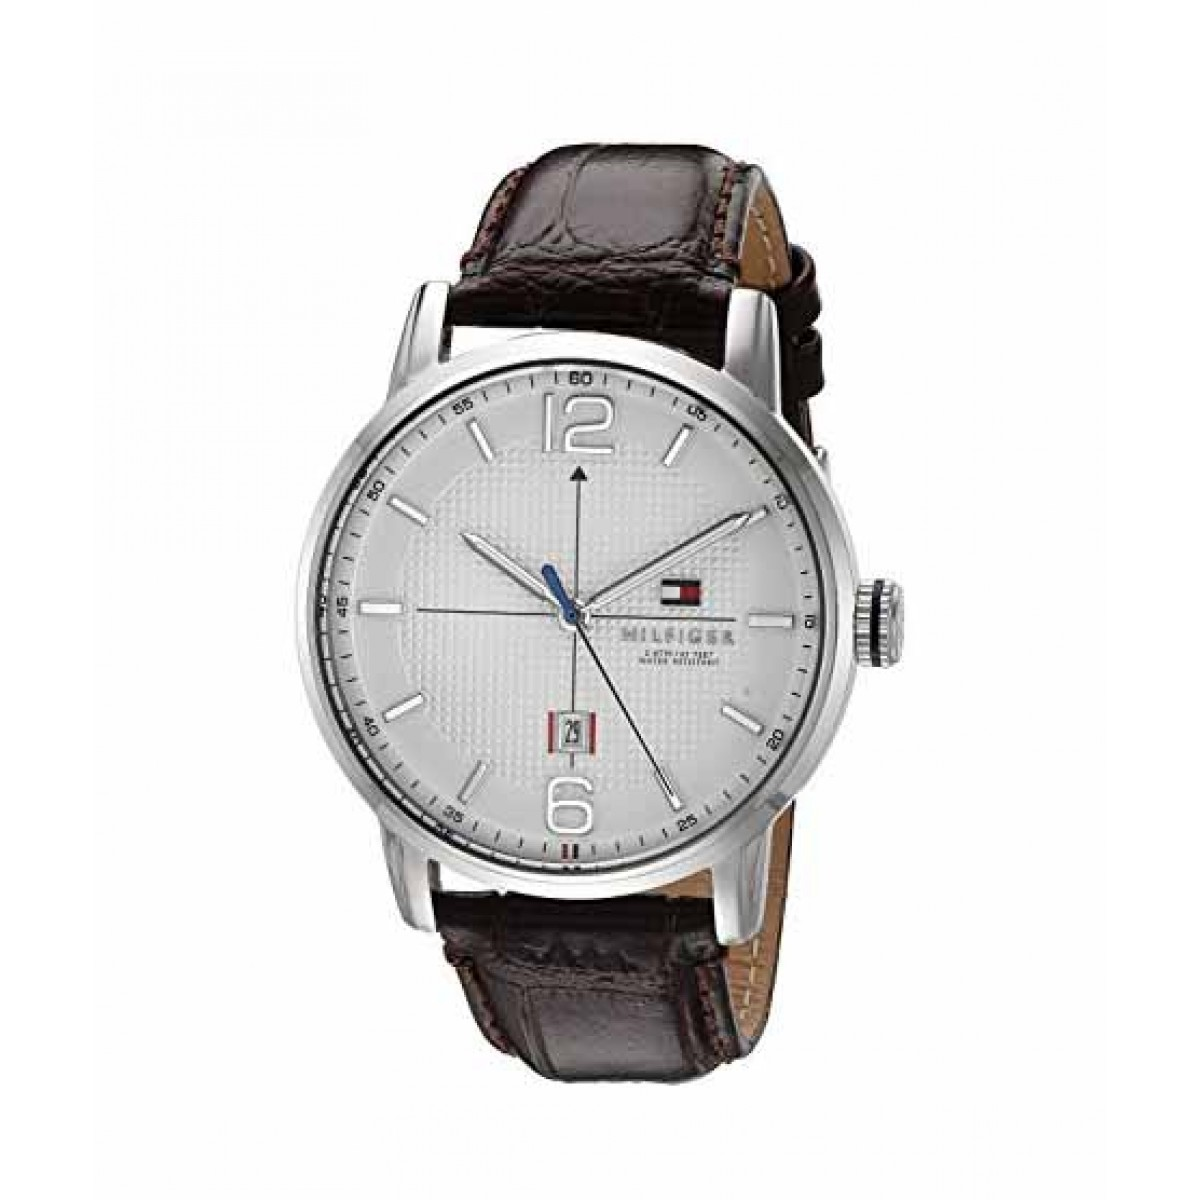 Tommy Hilfiger Men S Watch Price In Pakistan Buy Tommy Hilfiger